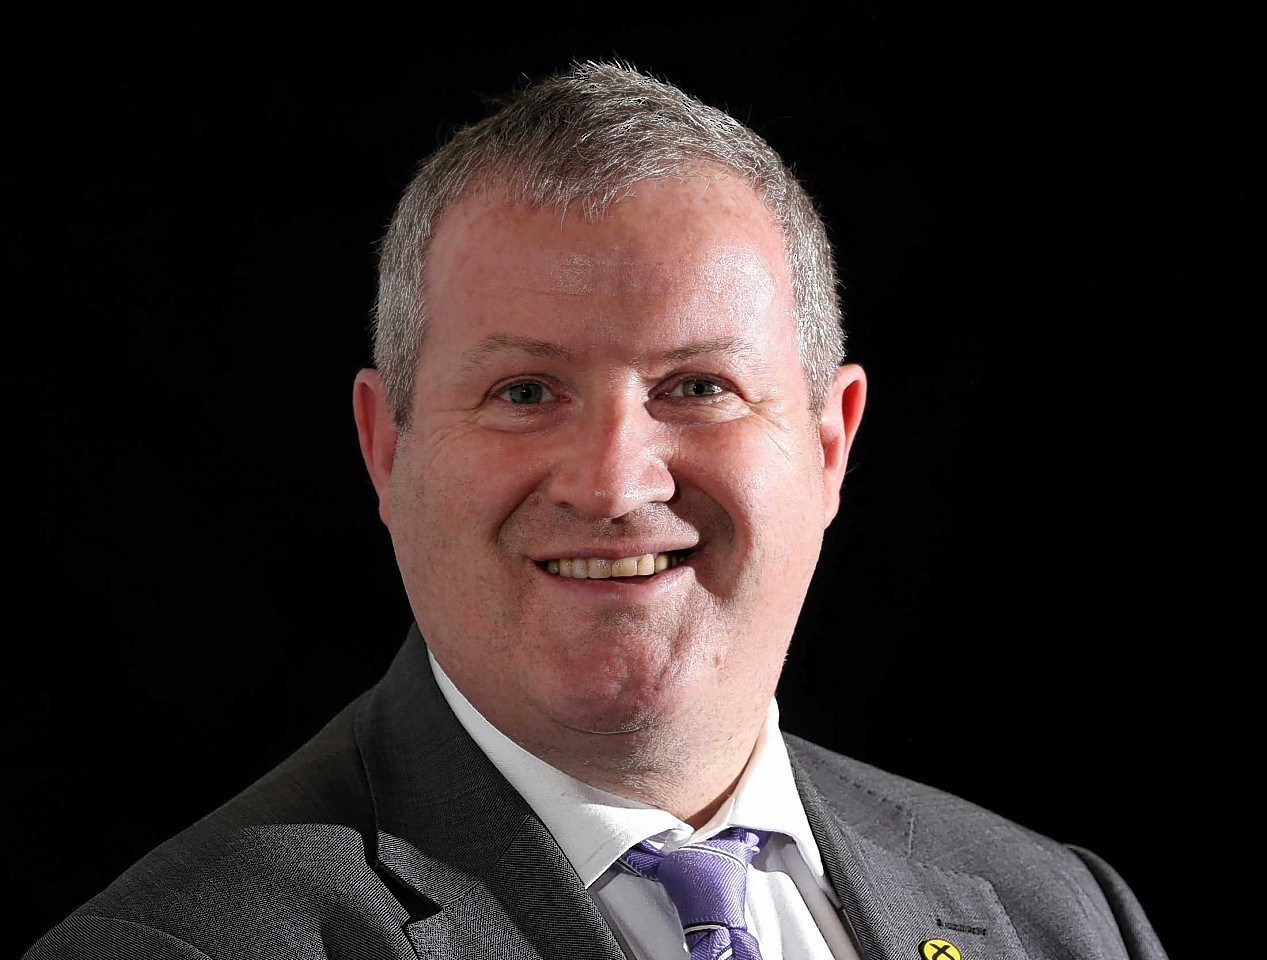 SNP MP Ian Blackford